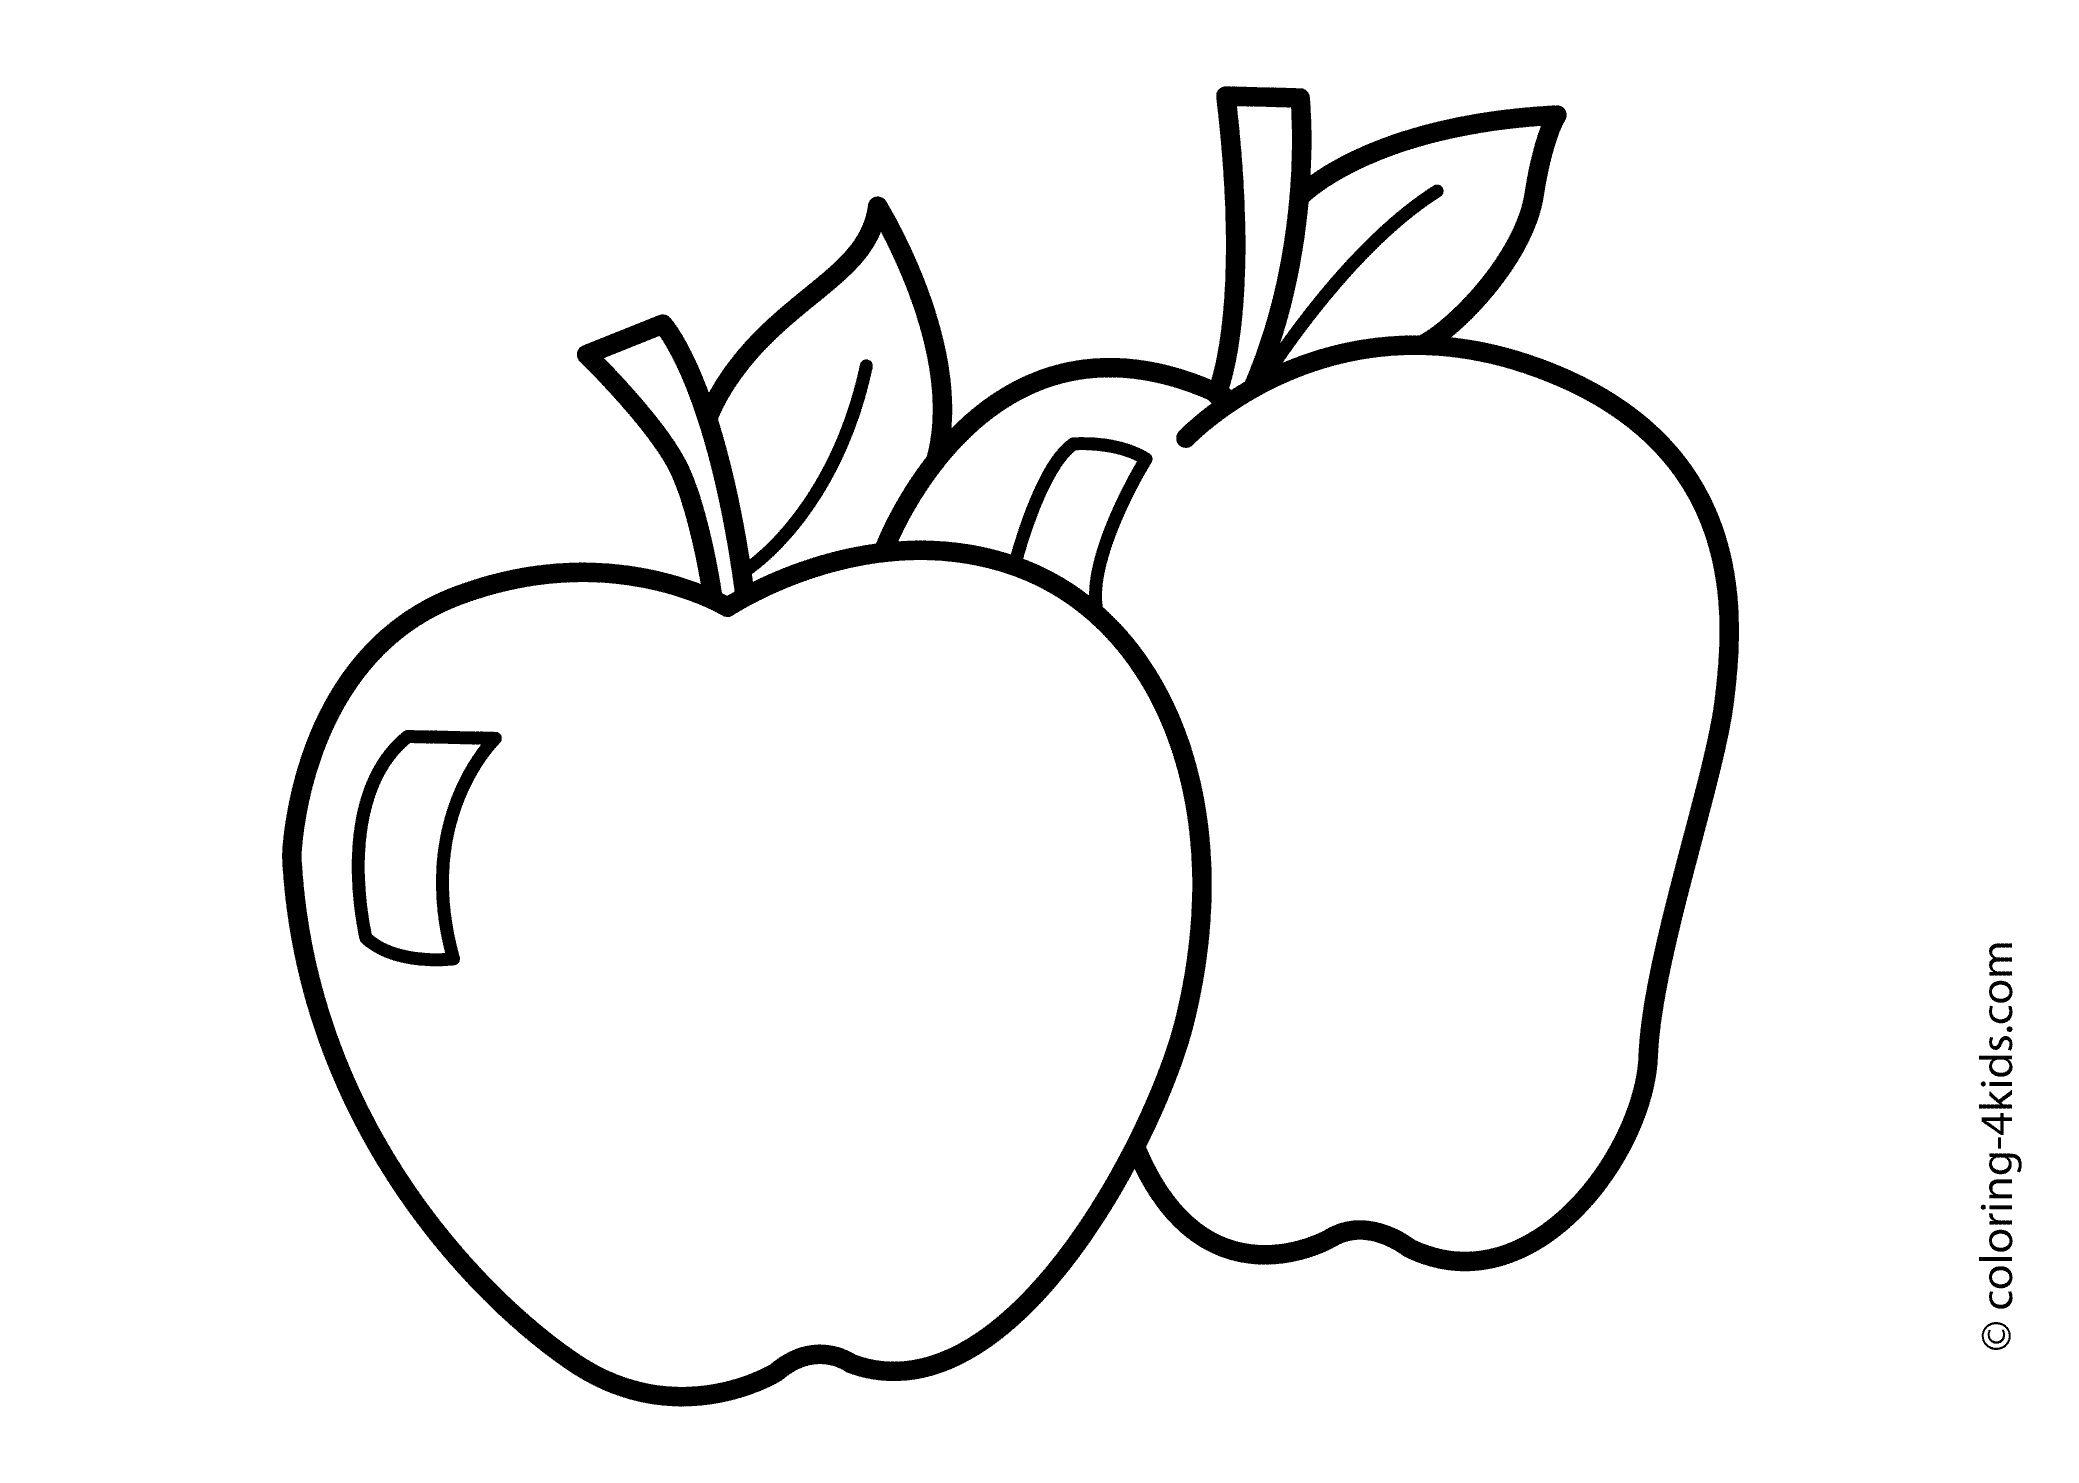 34 Inspirational Apple Coloring Pages Apple Coloring Pages Free Coloring Pages Apple Coloring